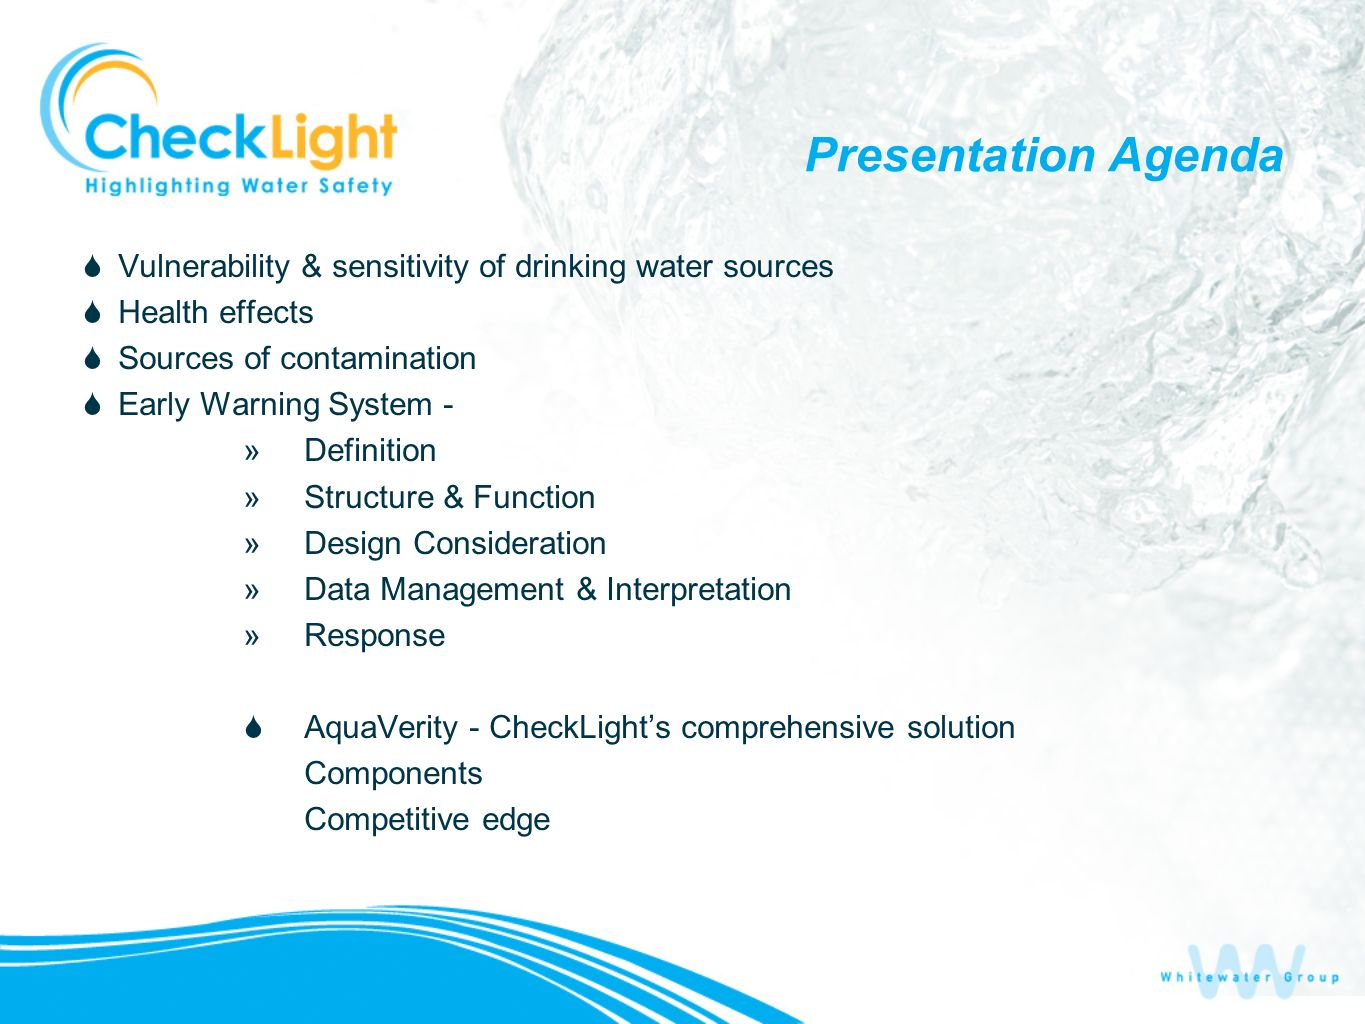 Presentation Agenda Vulnerability & sensitivity of drinking water sources Health effects Sources of contamination Early Warning System - »Definition »Structure & Function »Design Consideration »Data Management & Interpretation »Response AquaVerity - CheckLights comprehensive solution Components Competitive edge